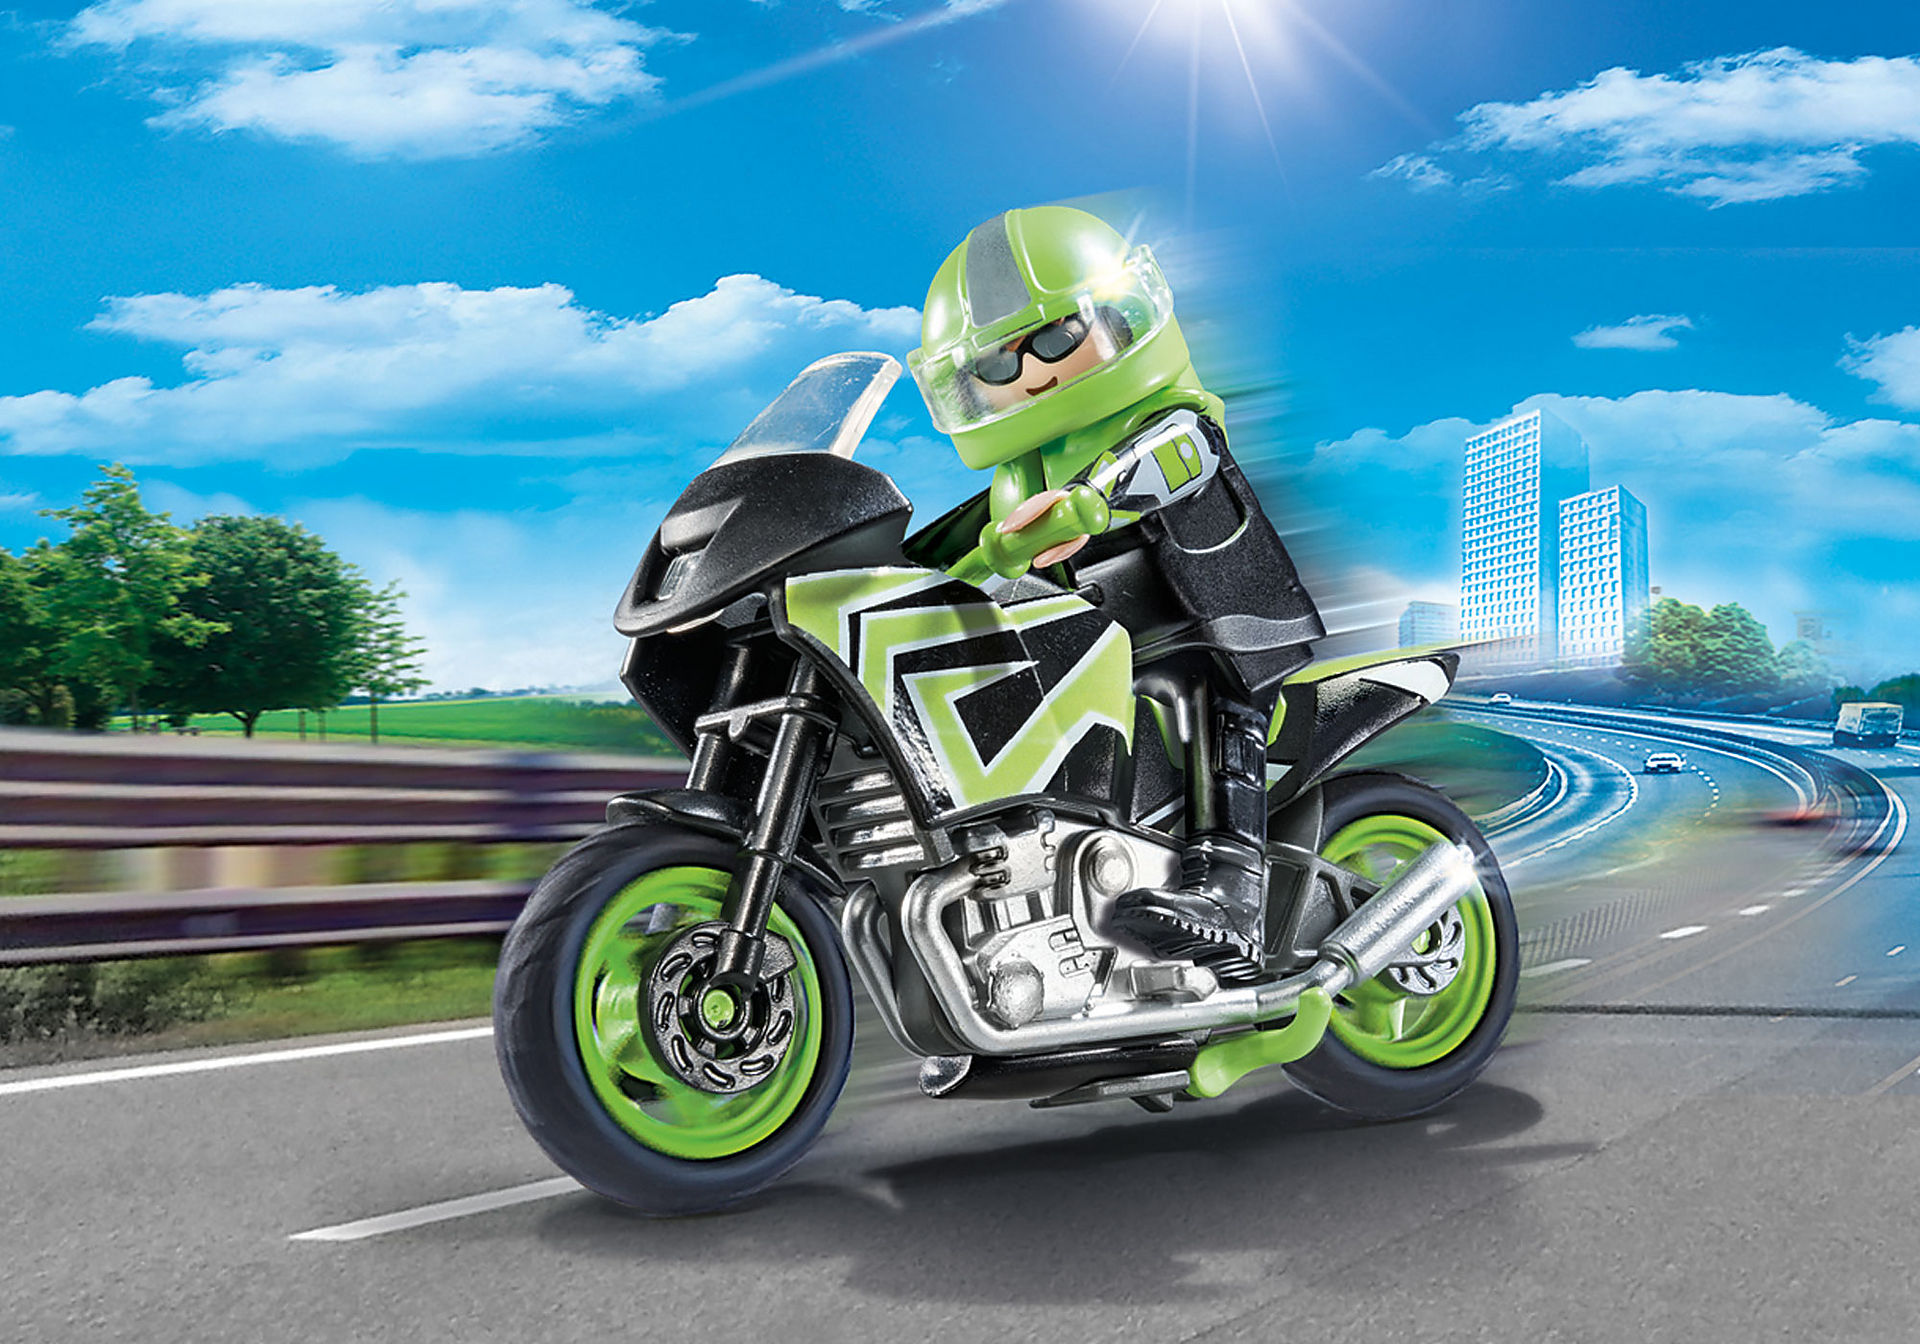 70204 Motorcycle with Rider zoom image1